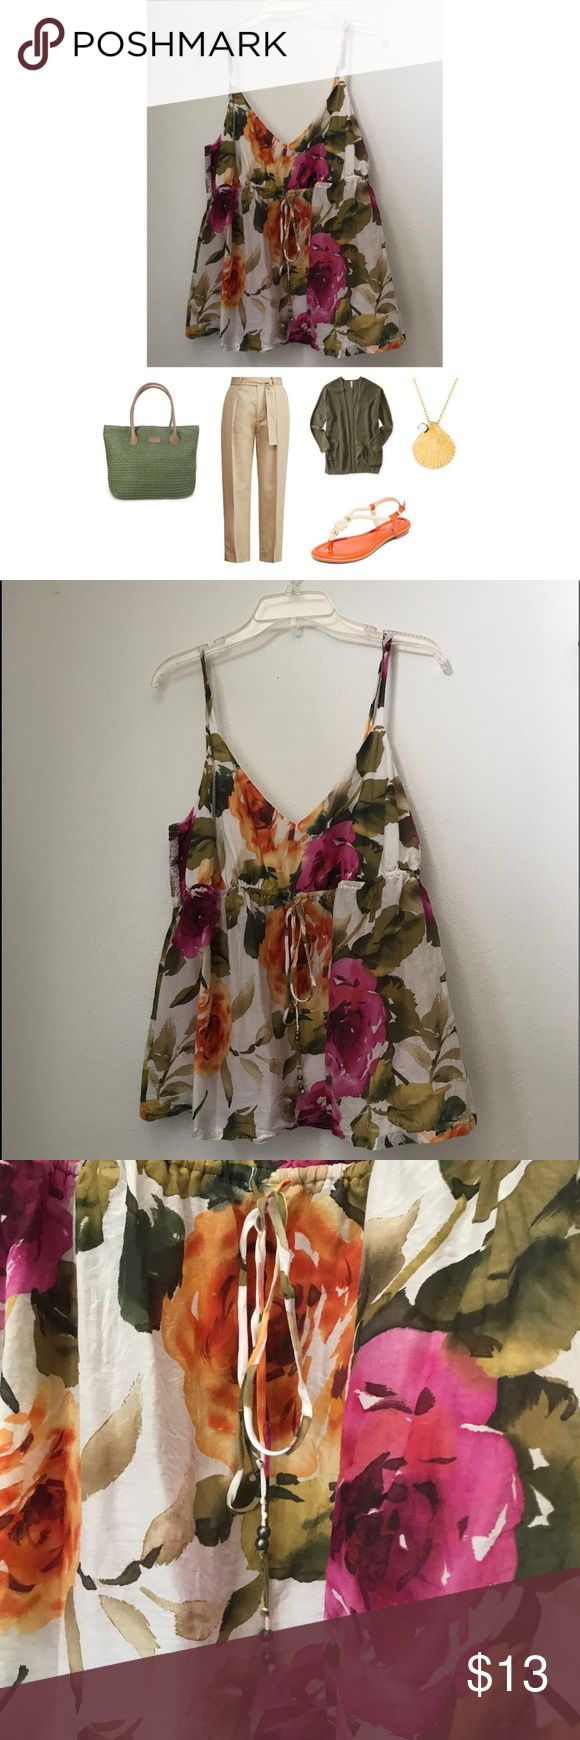 Tommy Bahama Floral Cami Beautiful and light cami with floral print..great colors to pair with anything. Size is XL but does fit more like a large. Stretch band back and adjustable straps. Tommy Bahama Tops